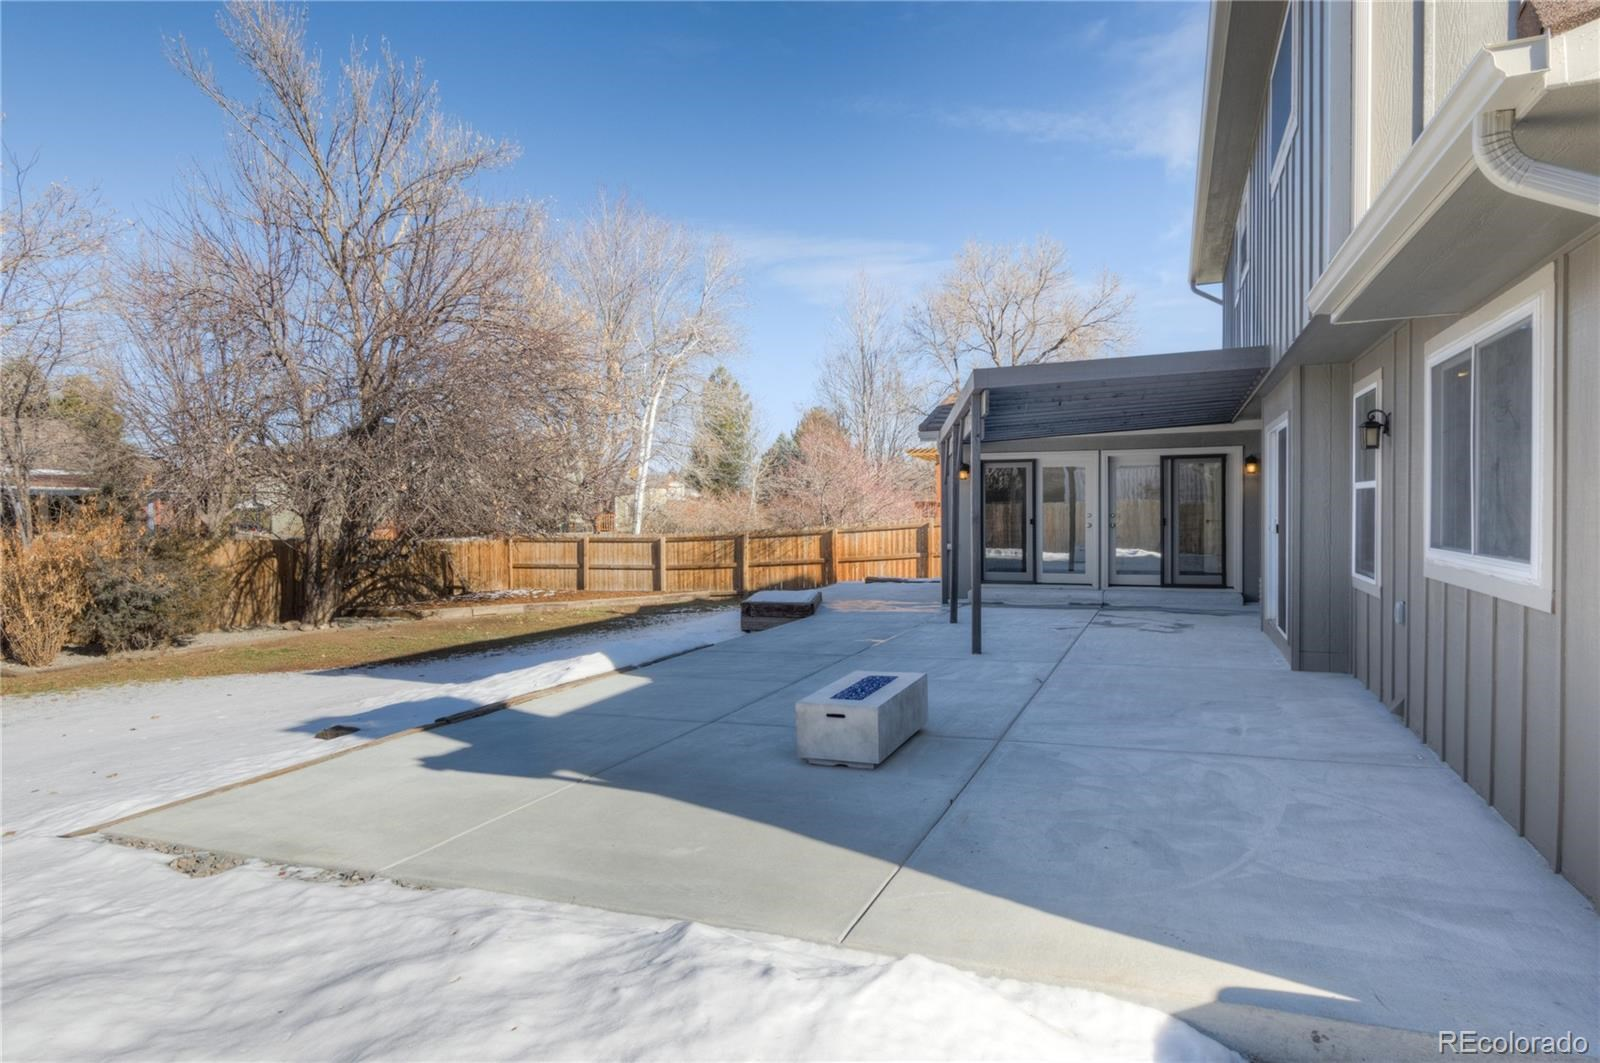 MLS# 4870124 - 39 - 4075 S Niagara Way, Denver, CO 80237